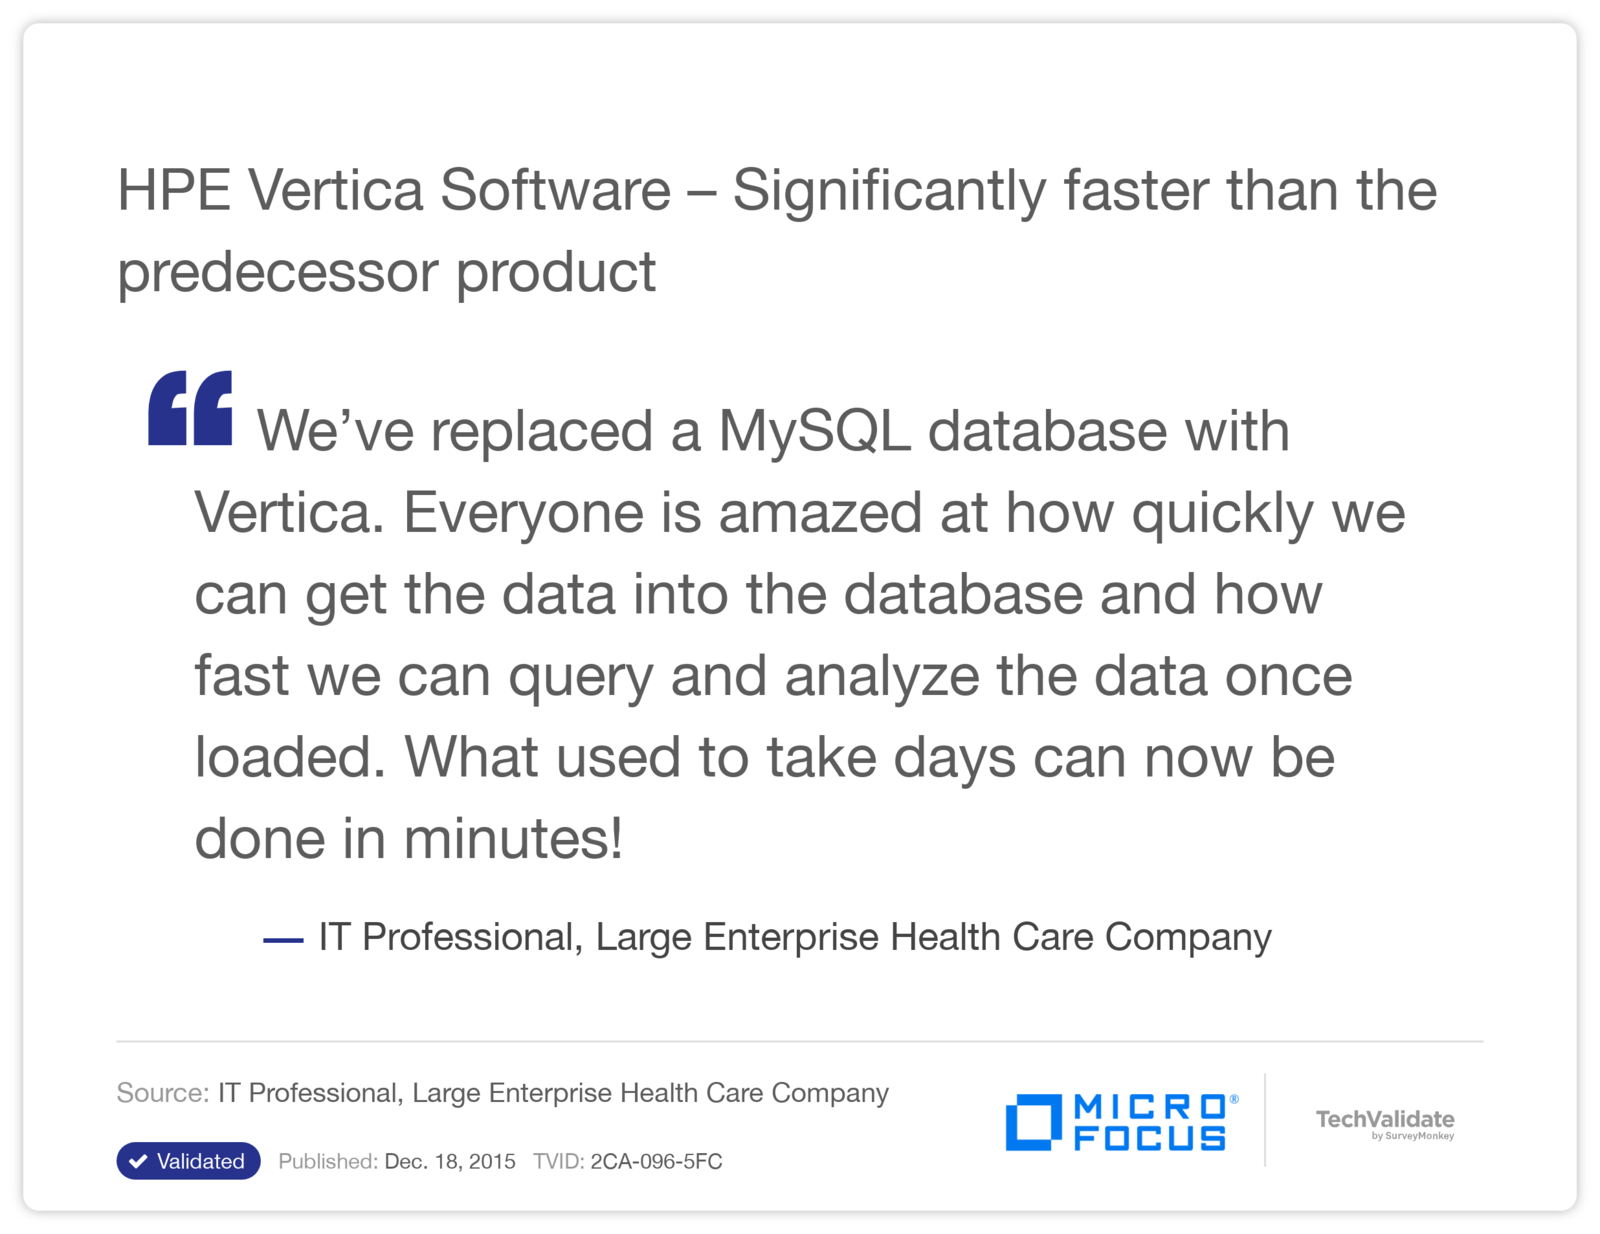 HPE Vertica Software -Significantly faster than the predecessor product